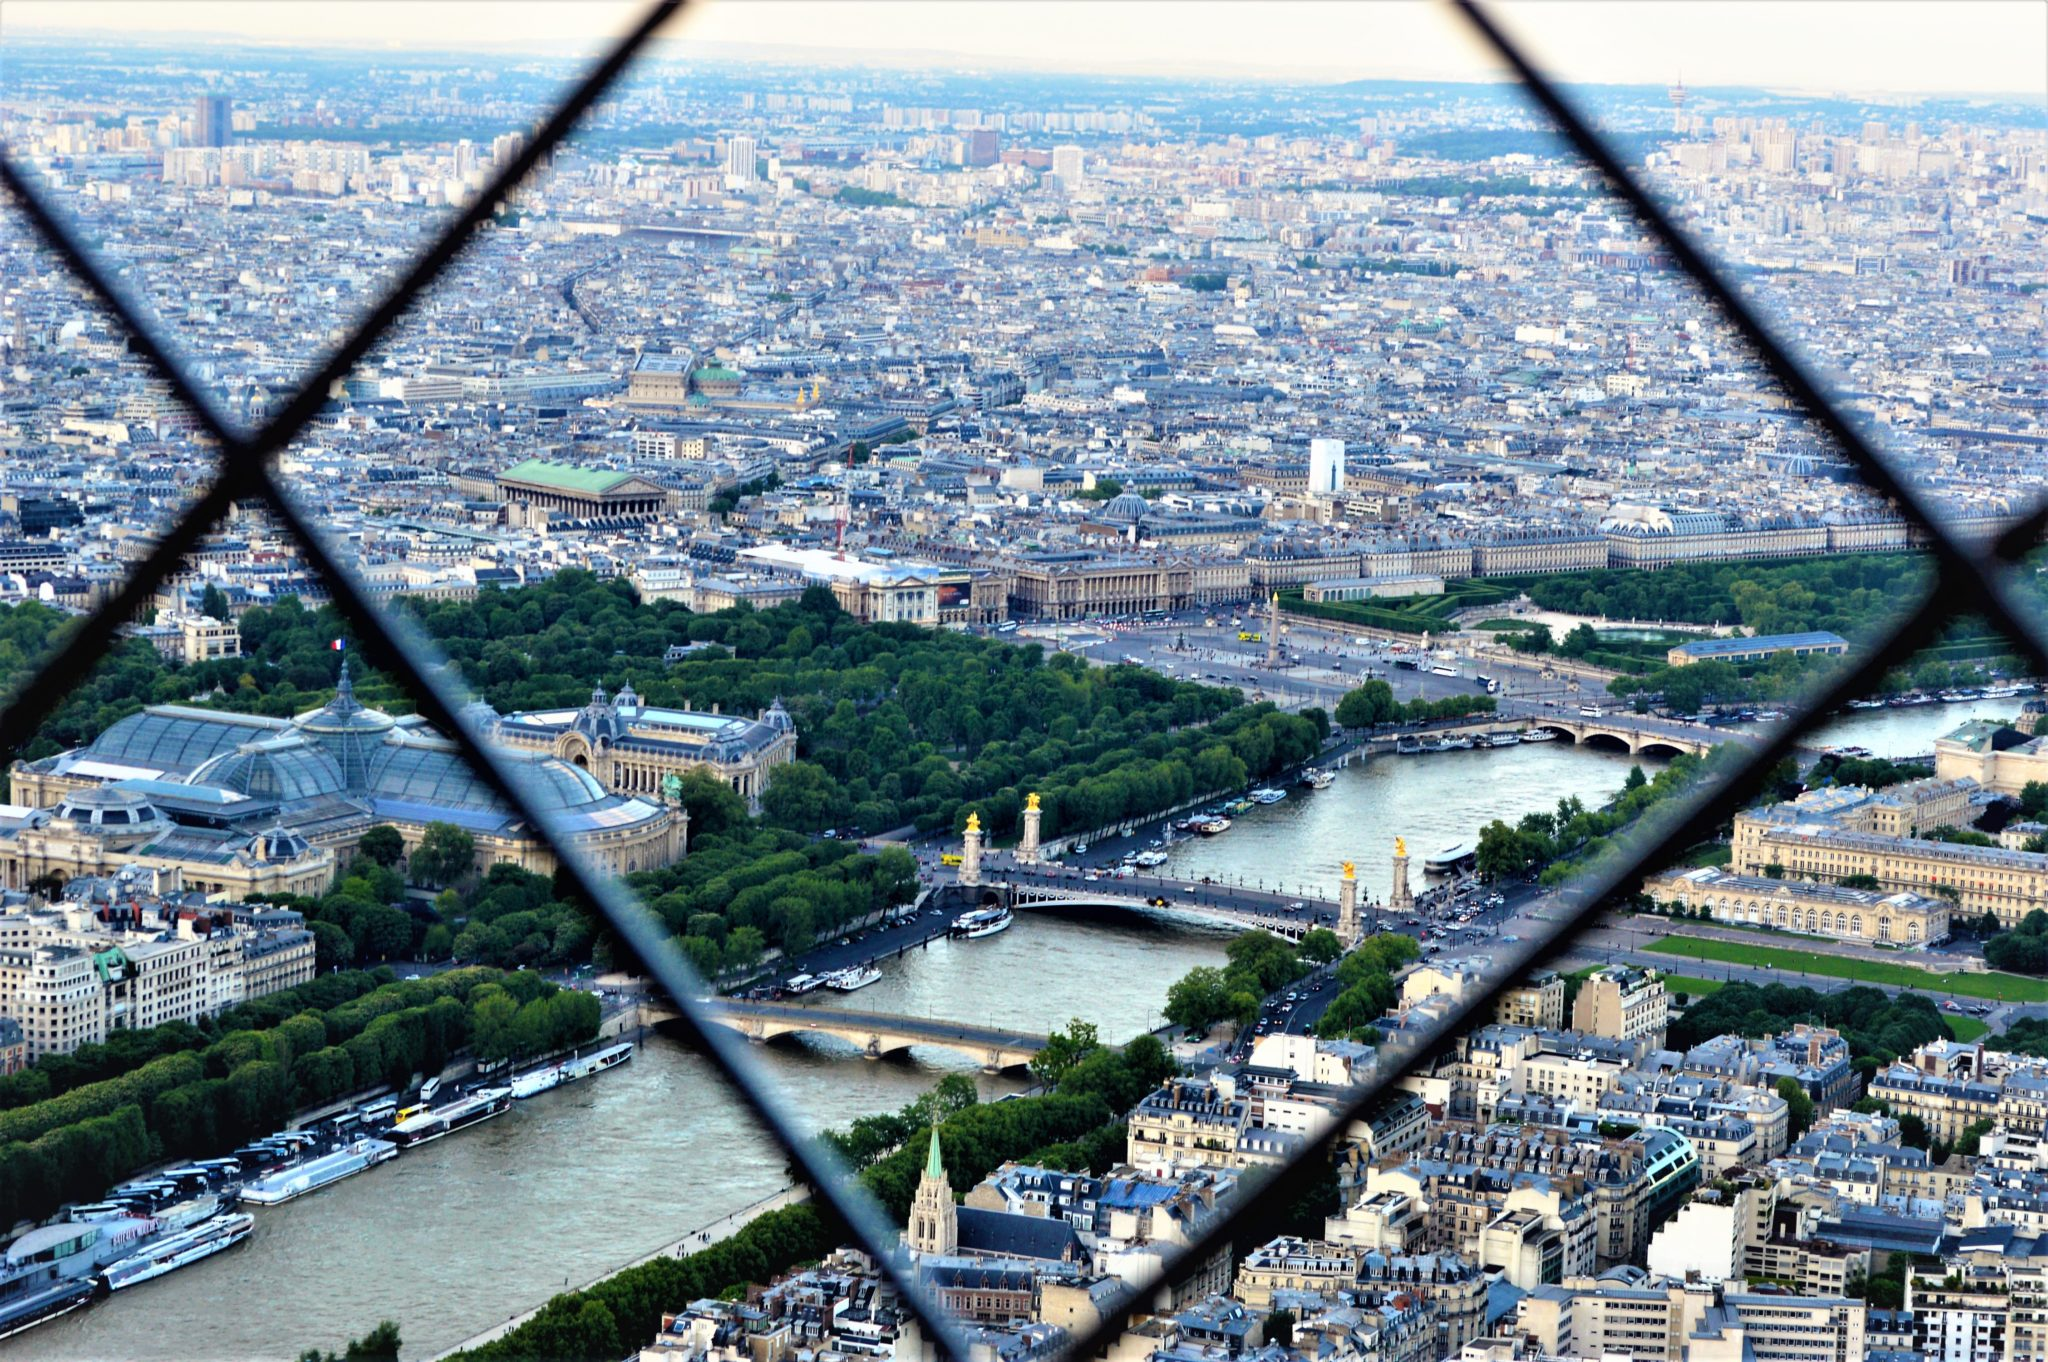 View from top of the Eiffel Tower, Paris, France